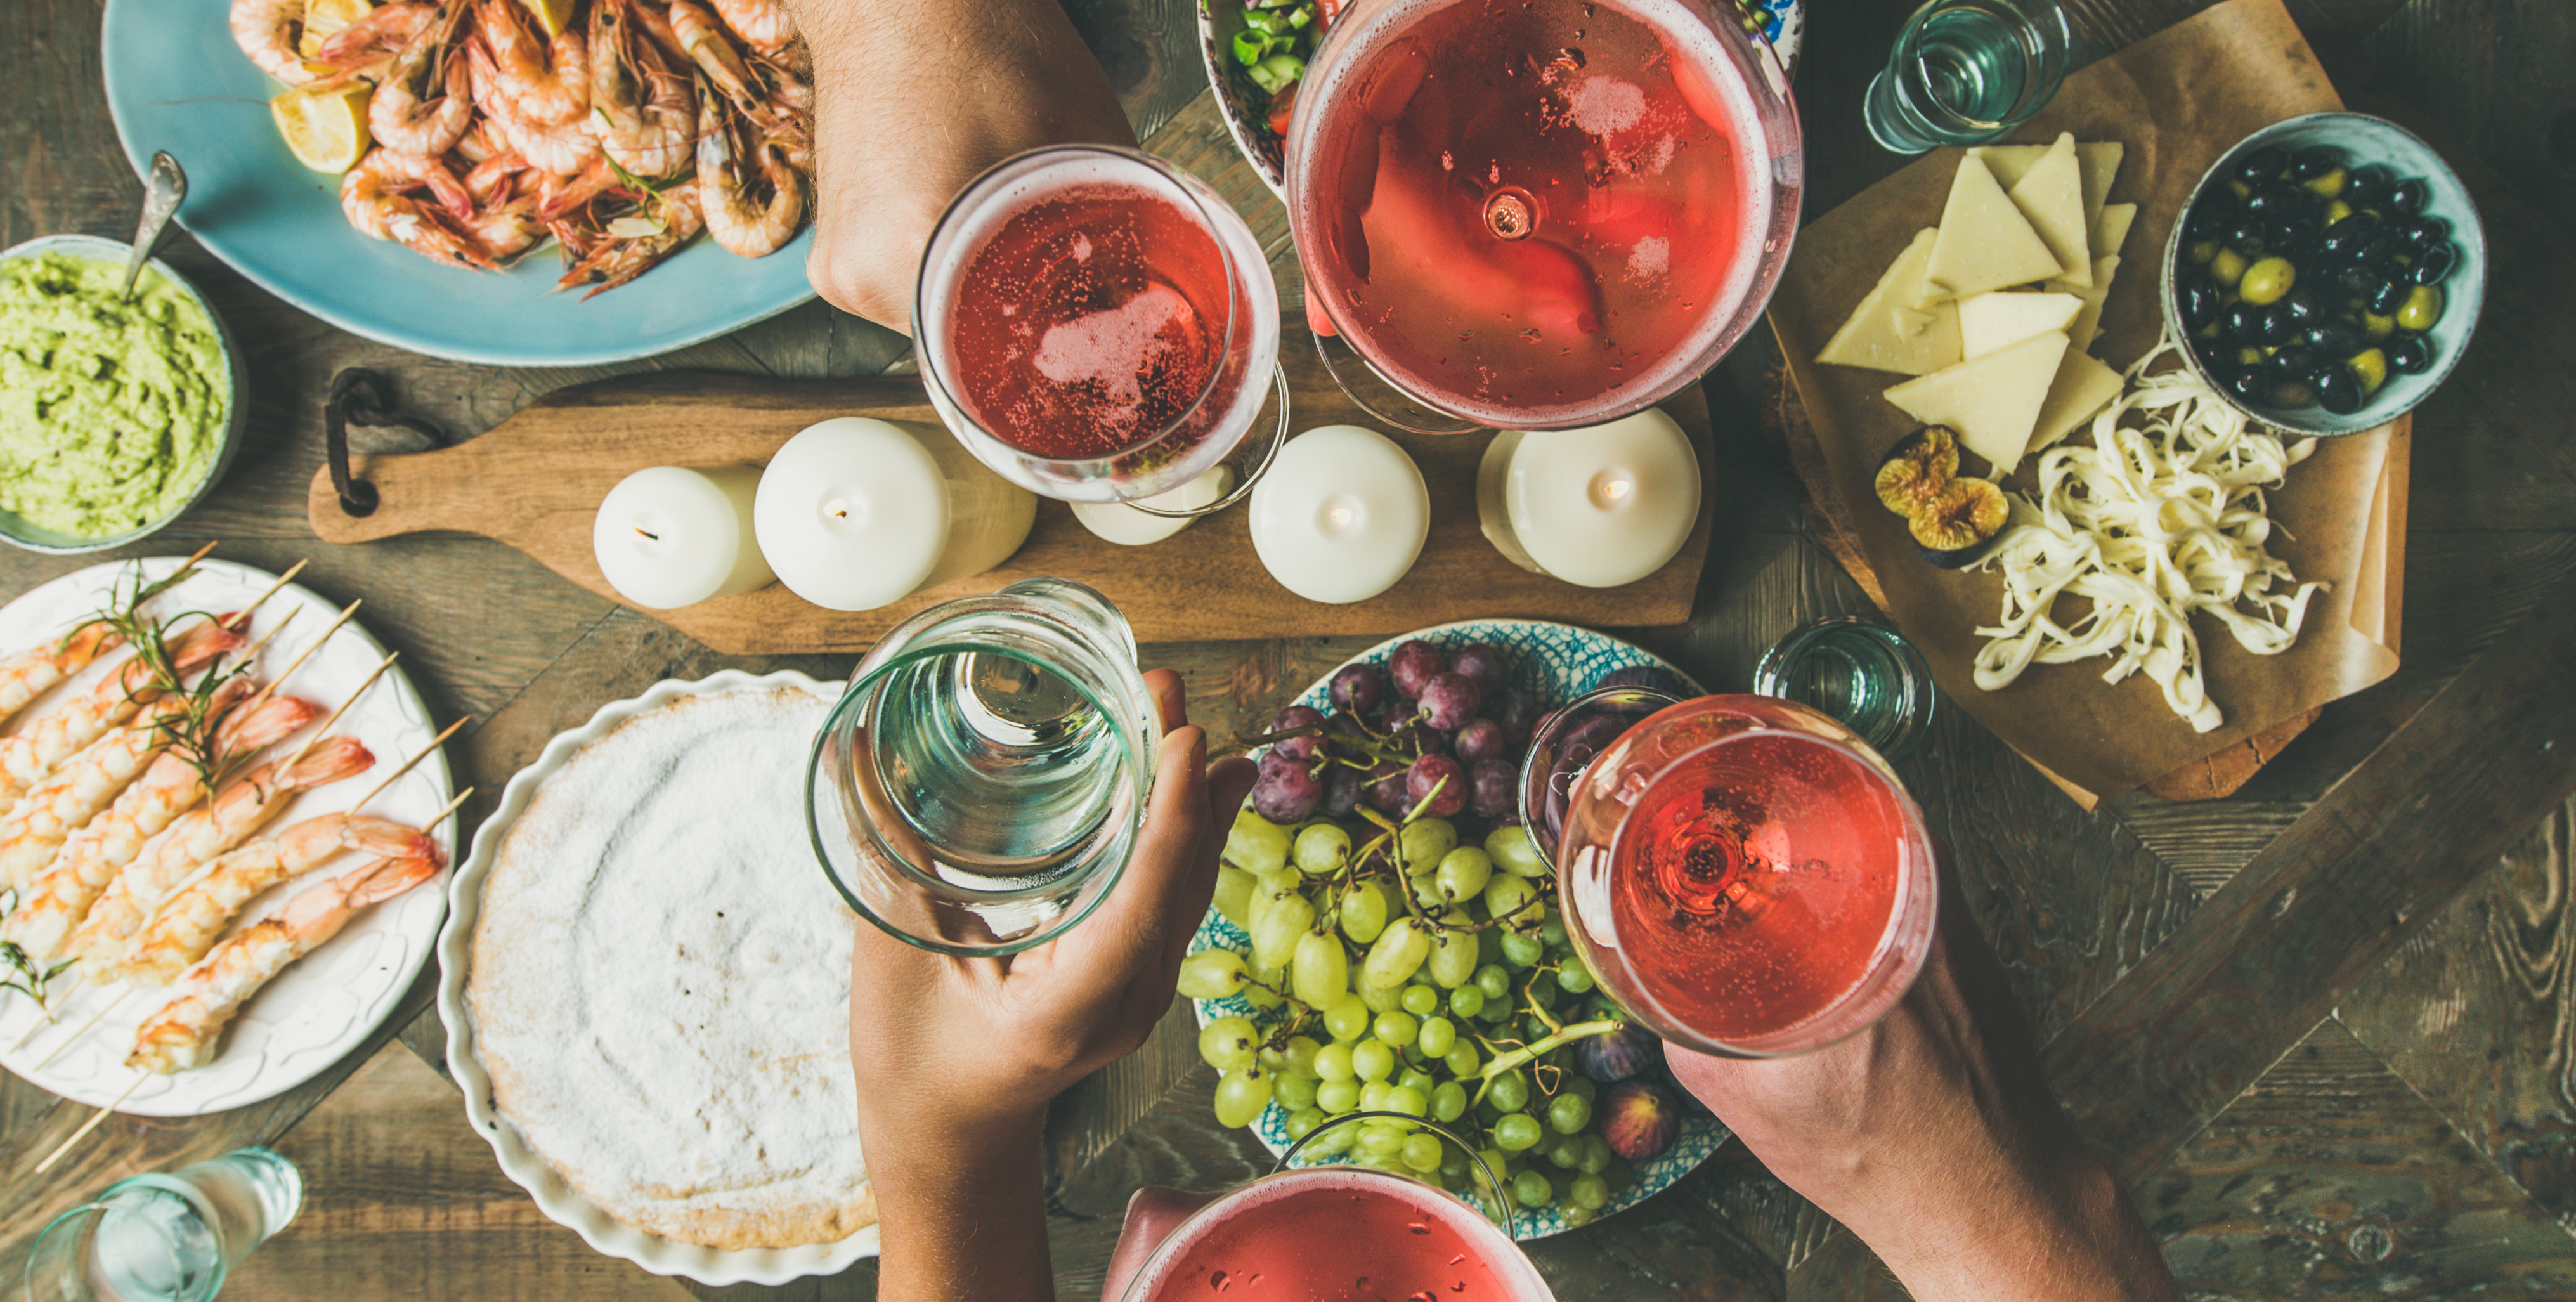 Holiday celebration table setting with food. Flat-lay of friends hands eating and drinking together. Top view of people having party, gathering, celebrating with rose champaign, wide composition